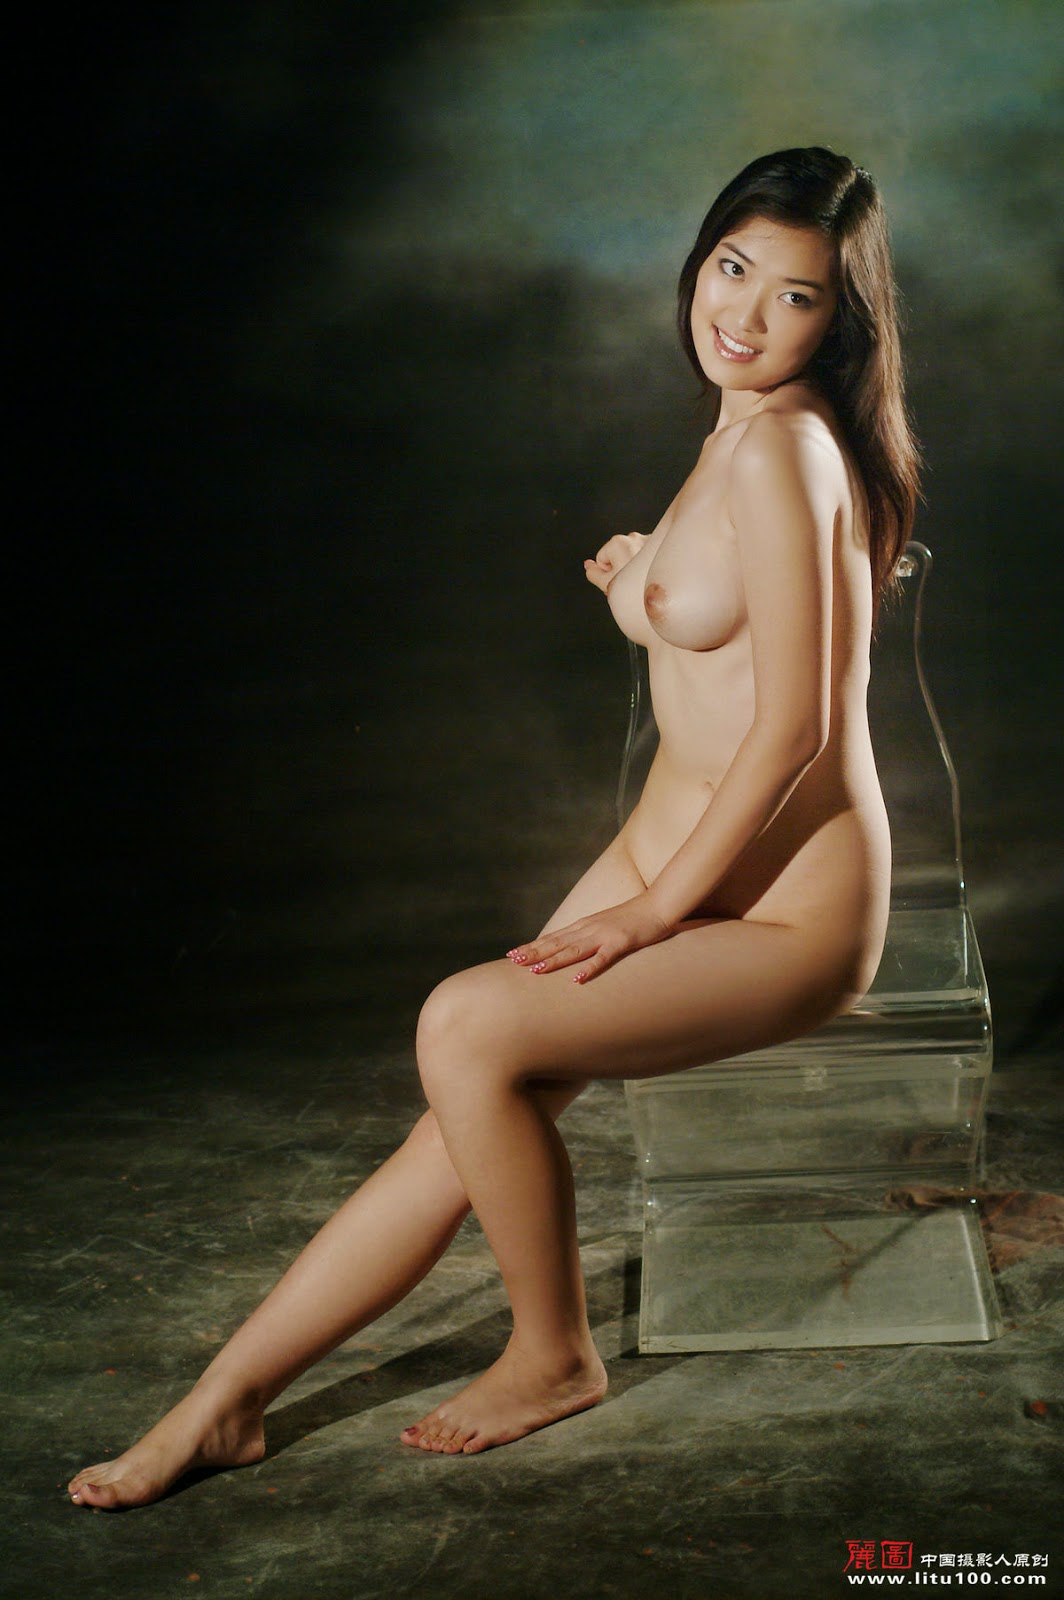 Chinese Wife Nude In Car